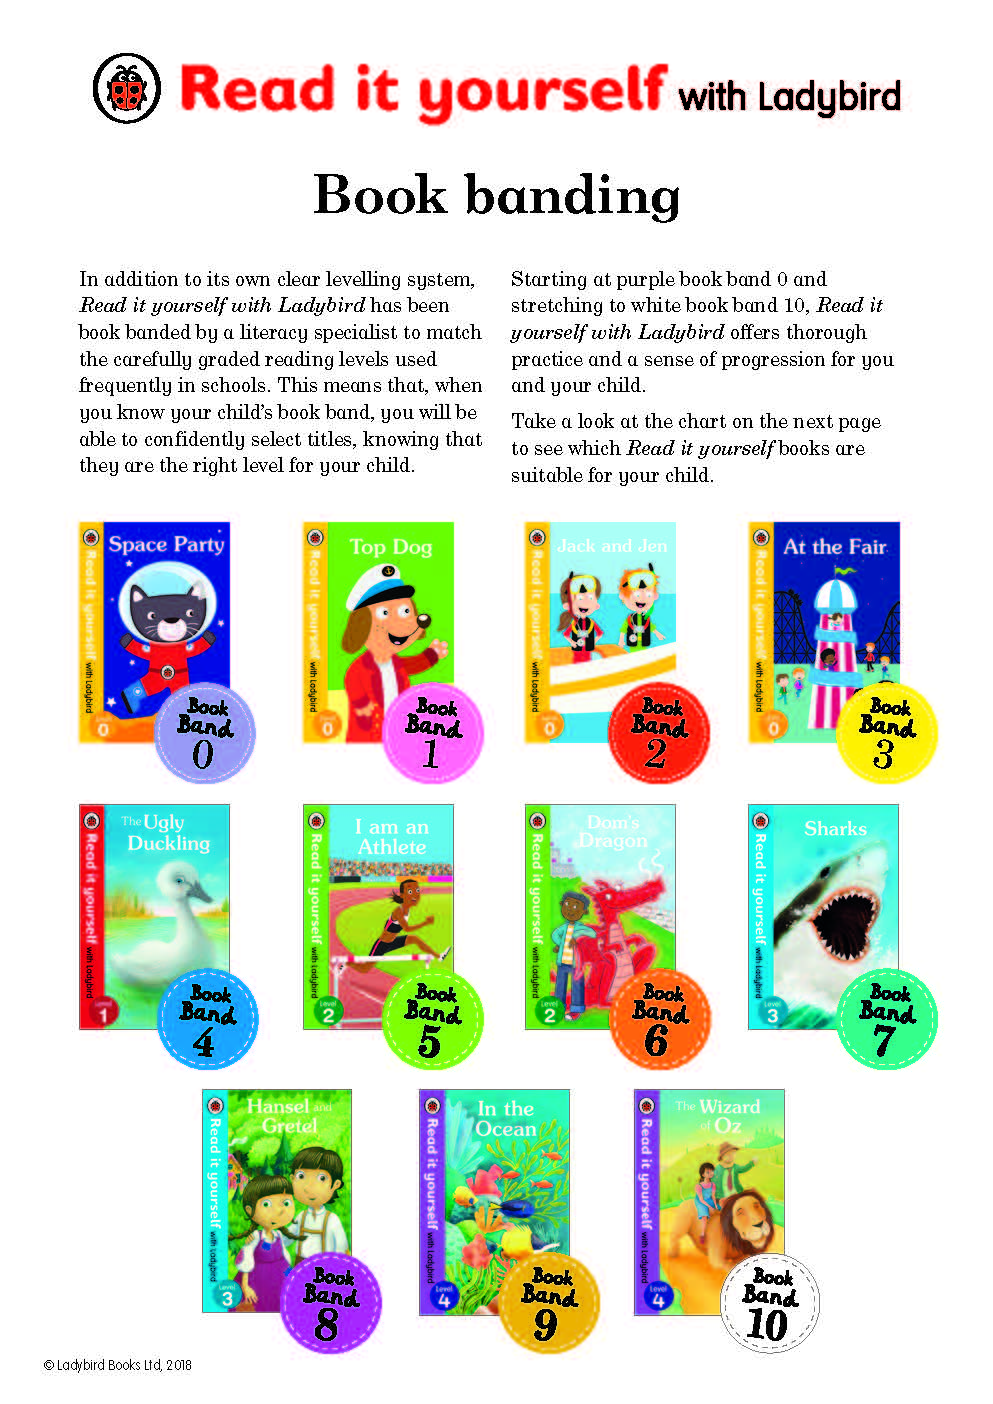 Read it yourself Book Banding Chart